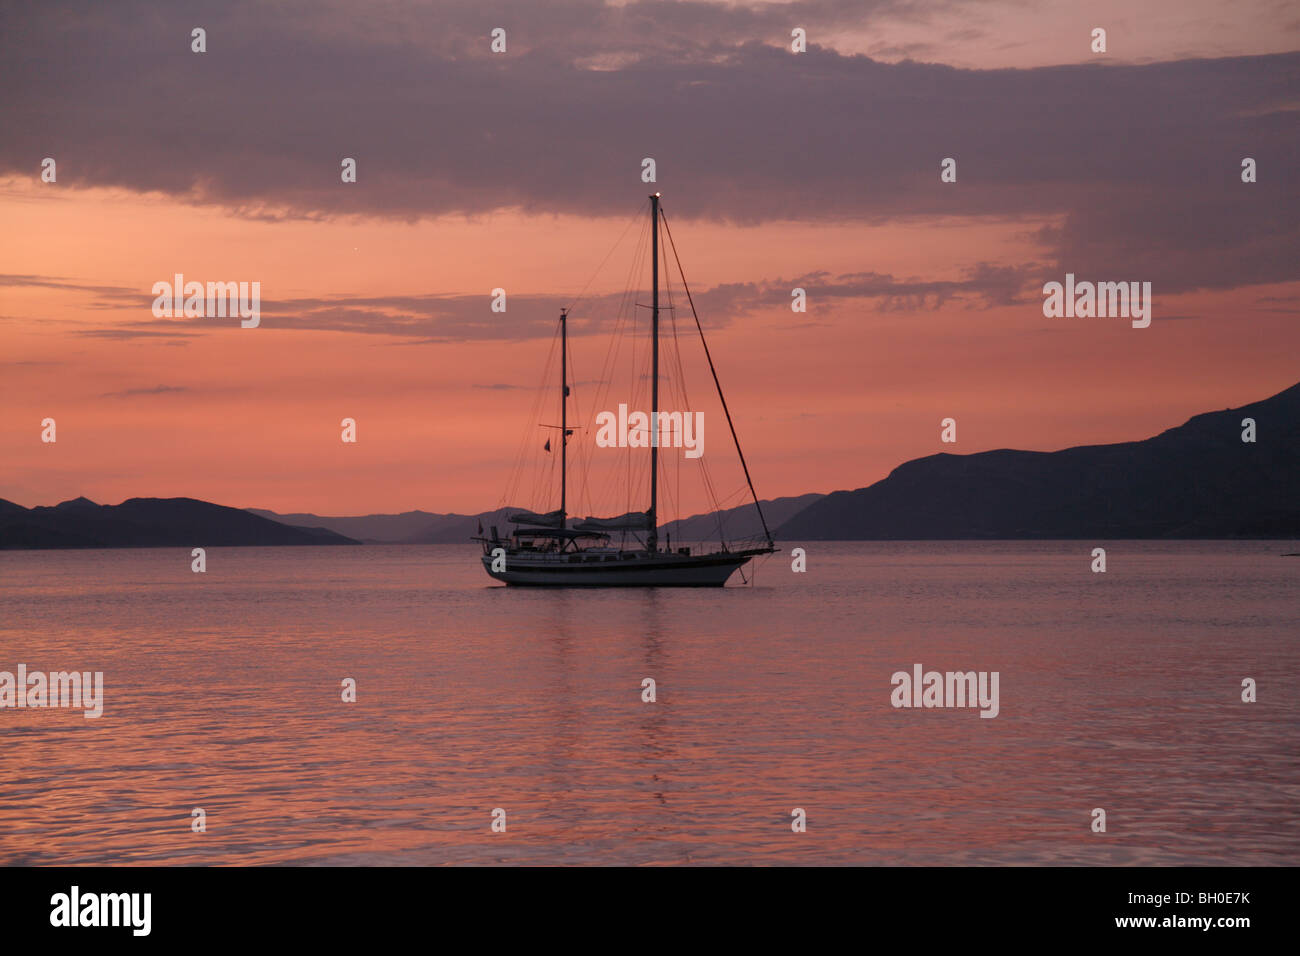 Moored yacht at  sunset Donje Celo harbour, Kolocep, South Dalmatia Croatia one of the Elaphite islands near Dubrovnik Stock Photo